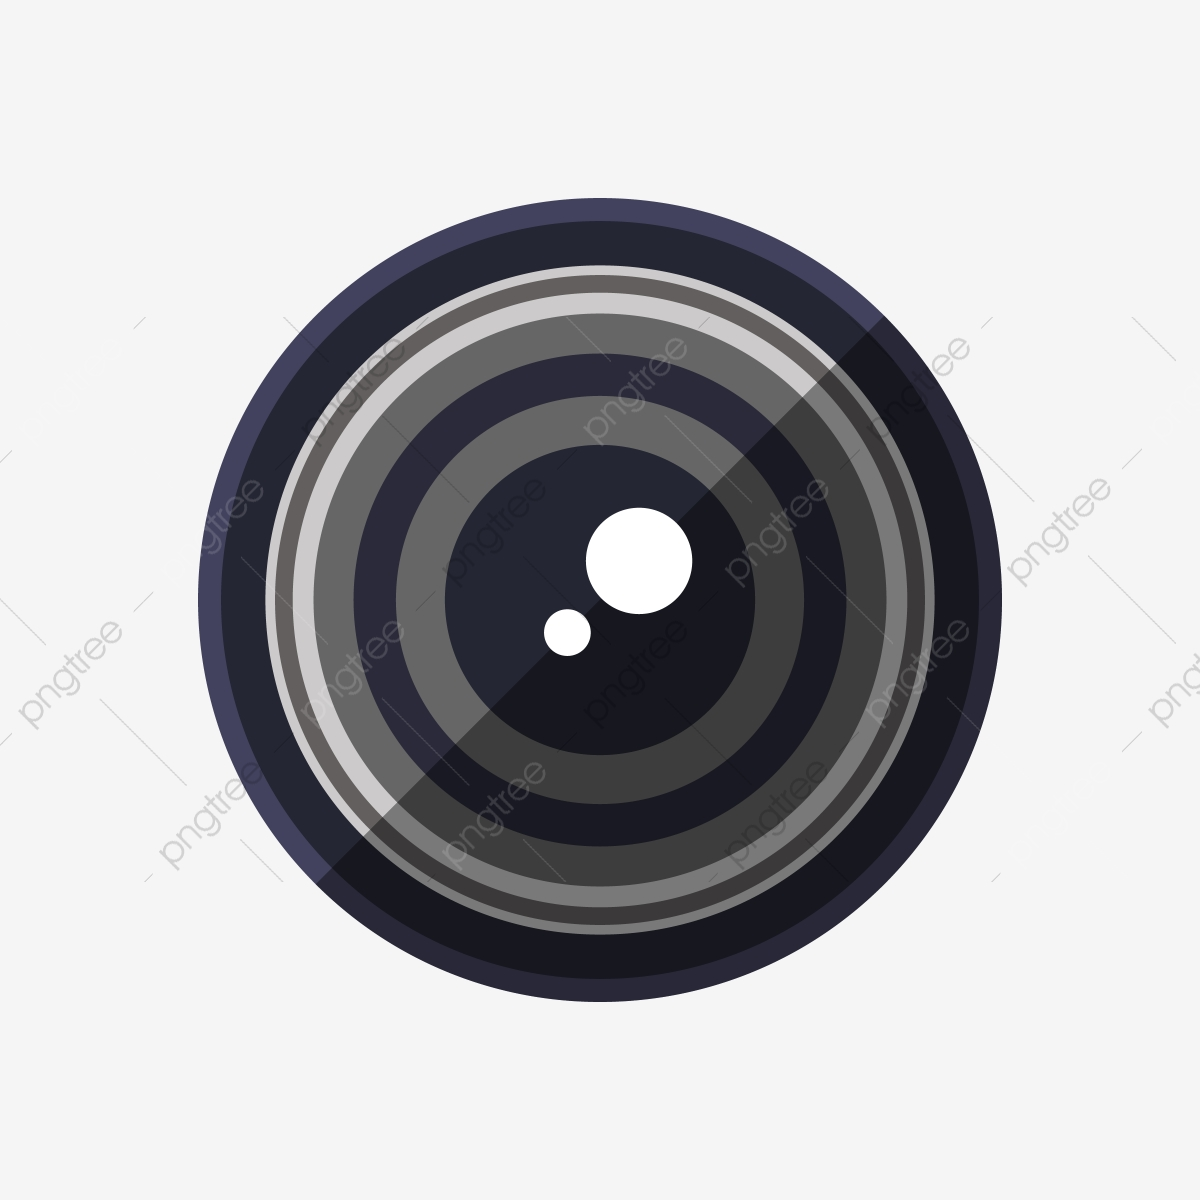 picture royalty free download Black camera symbol logo. Lens clipart